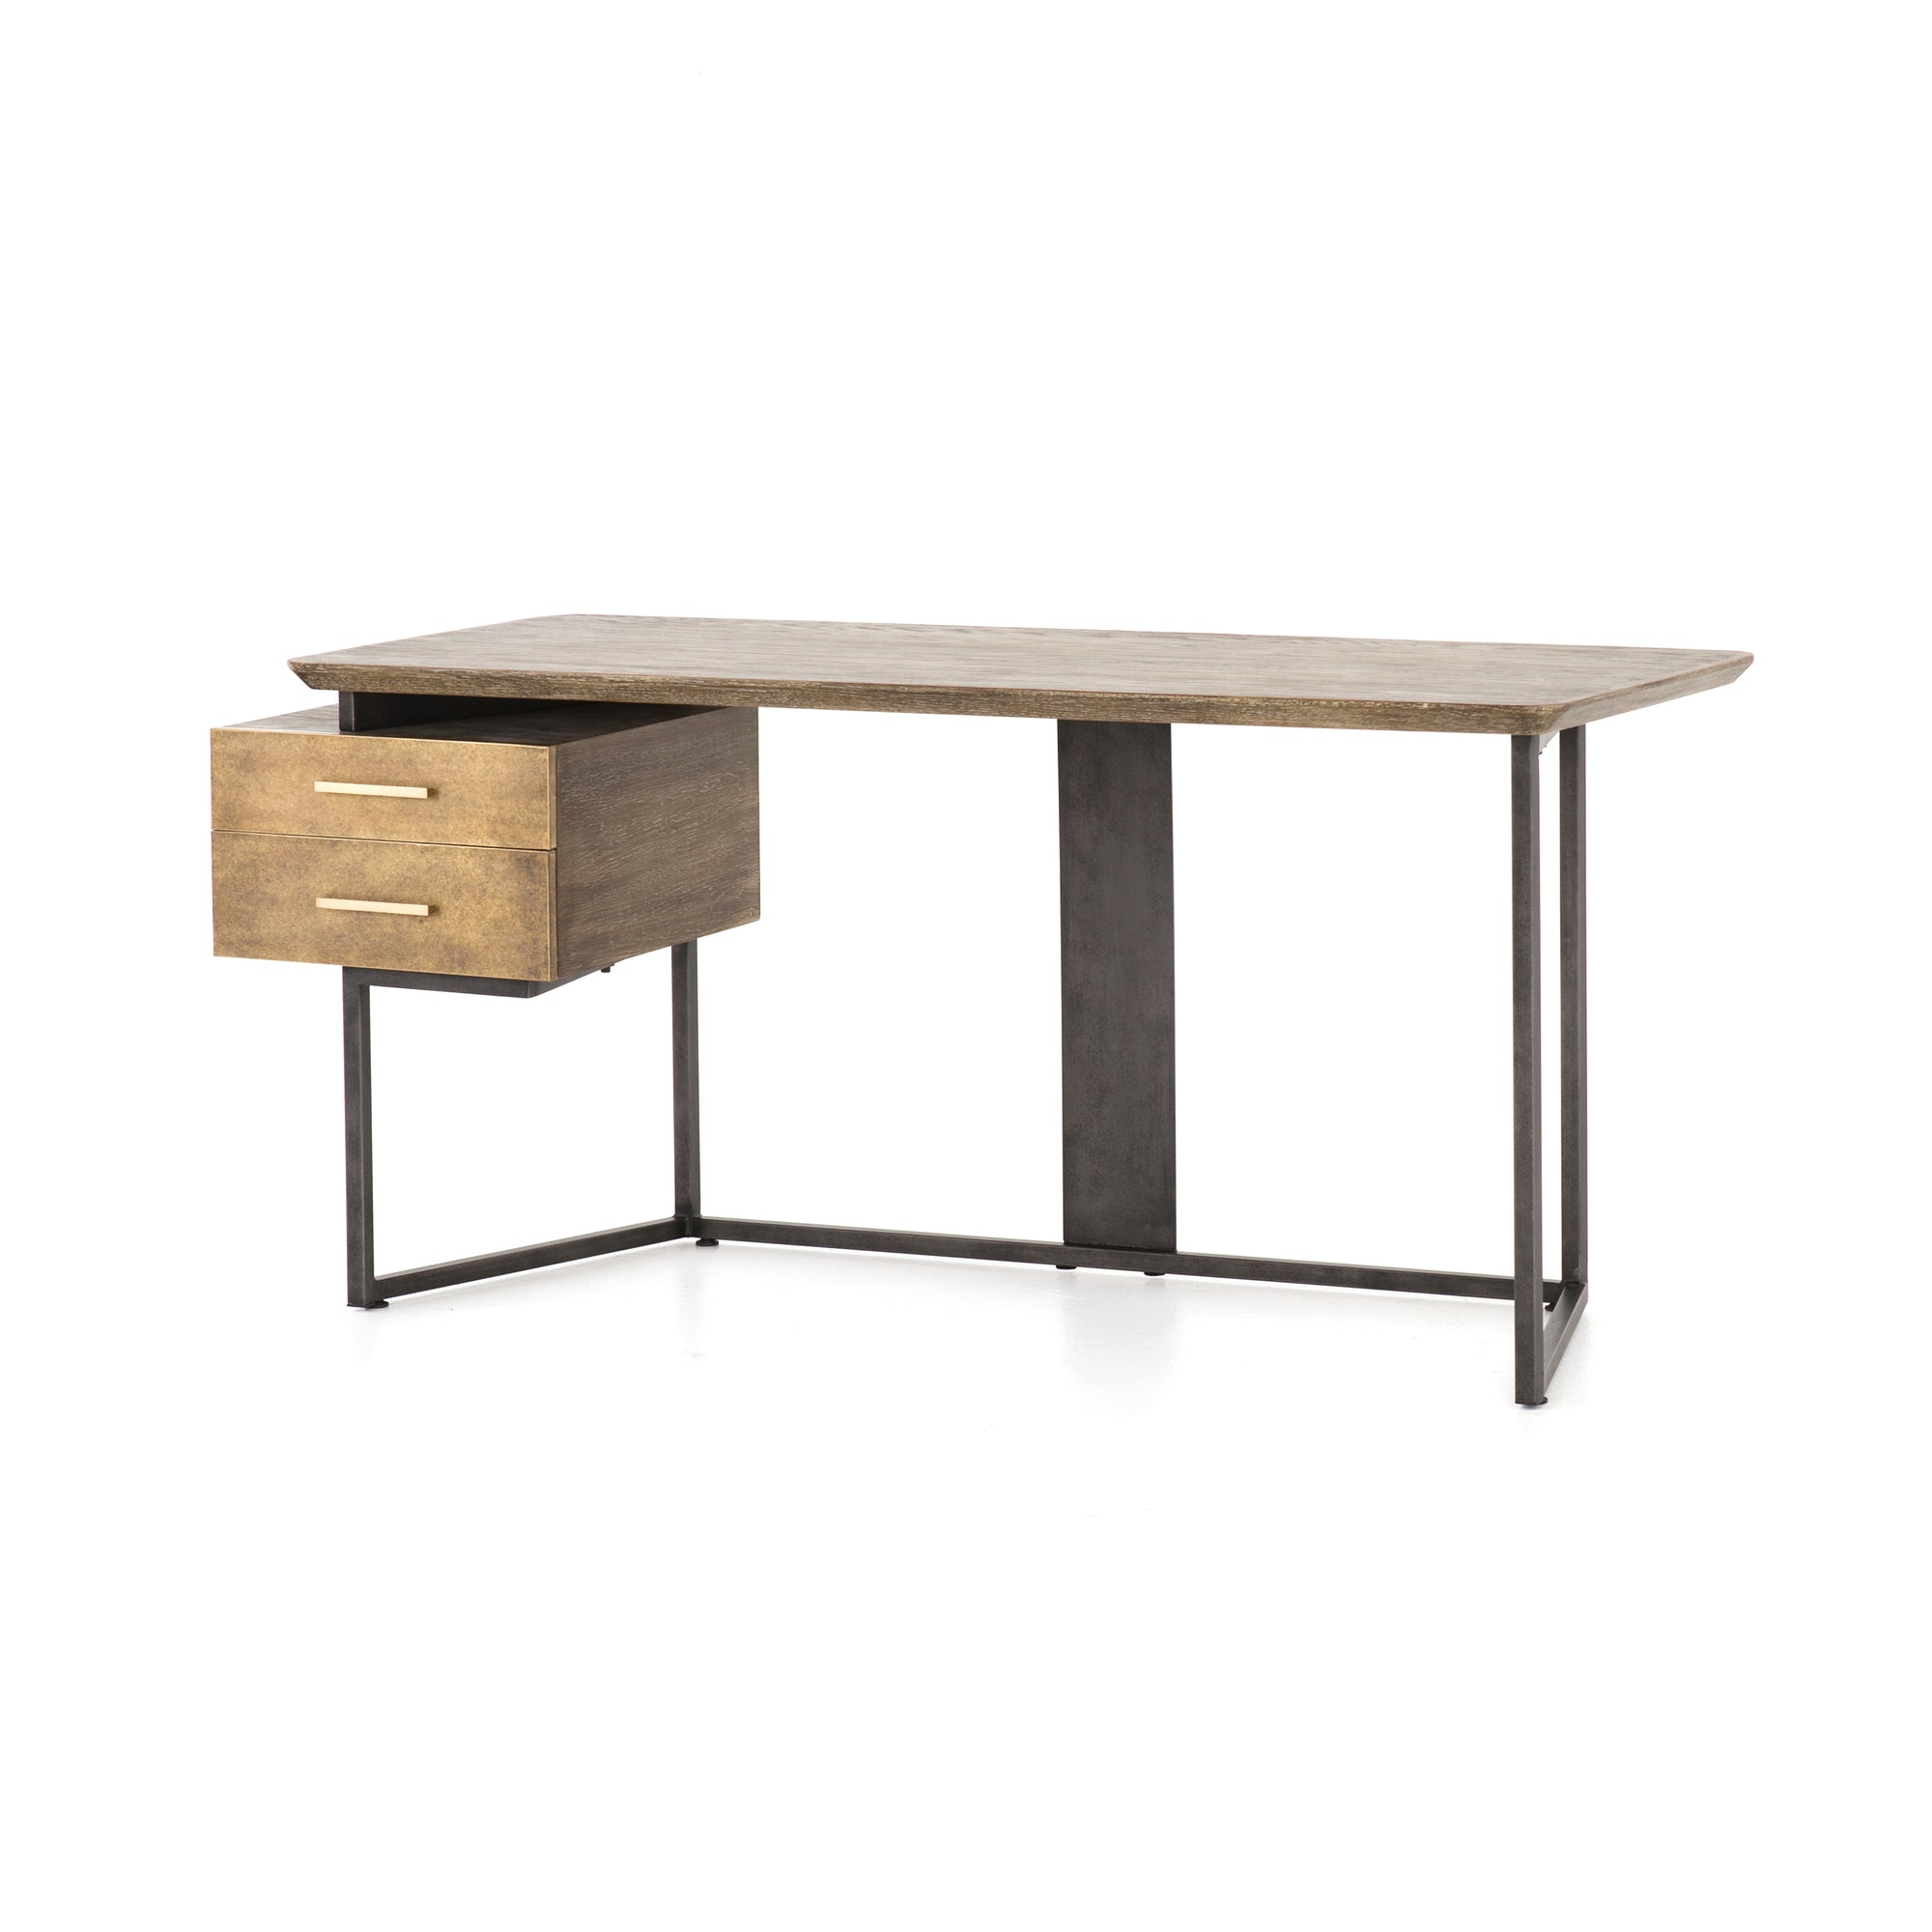 Alden Desk - Oak Burnt Veneer